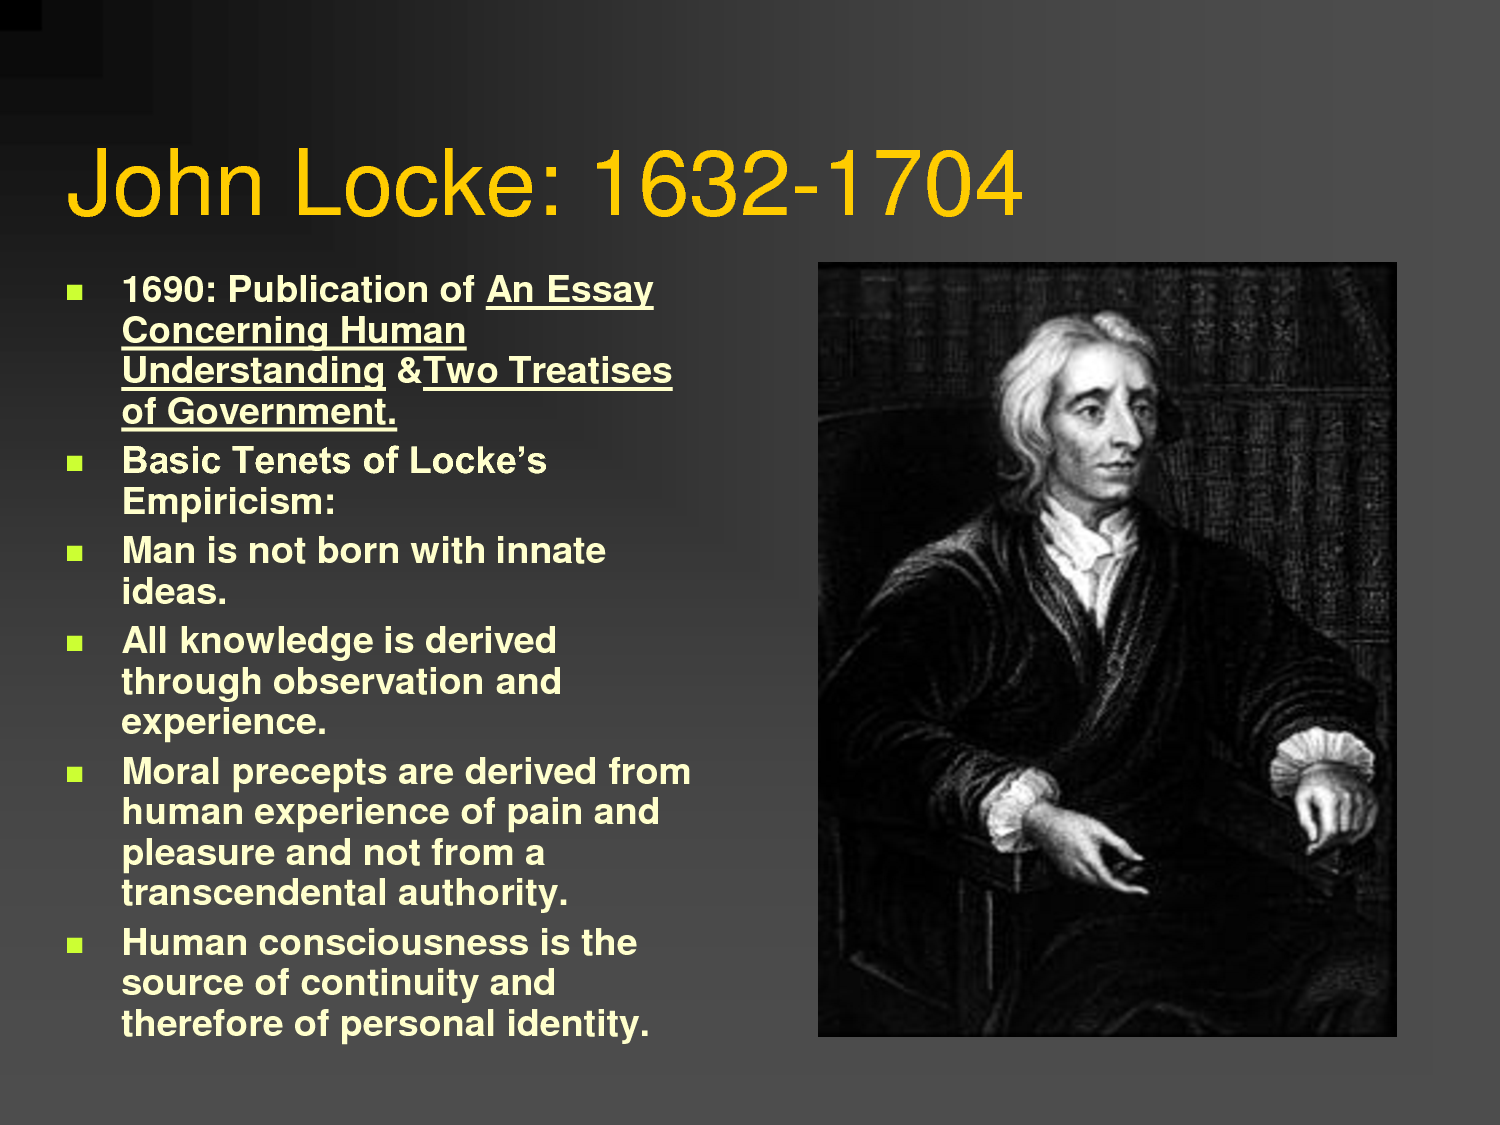 The theories of human nature proposed by thomas hobbes john locke and jean jacques rousseau